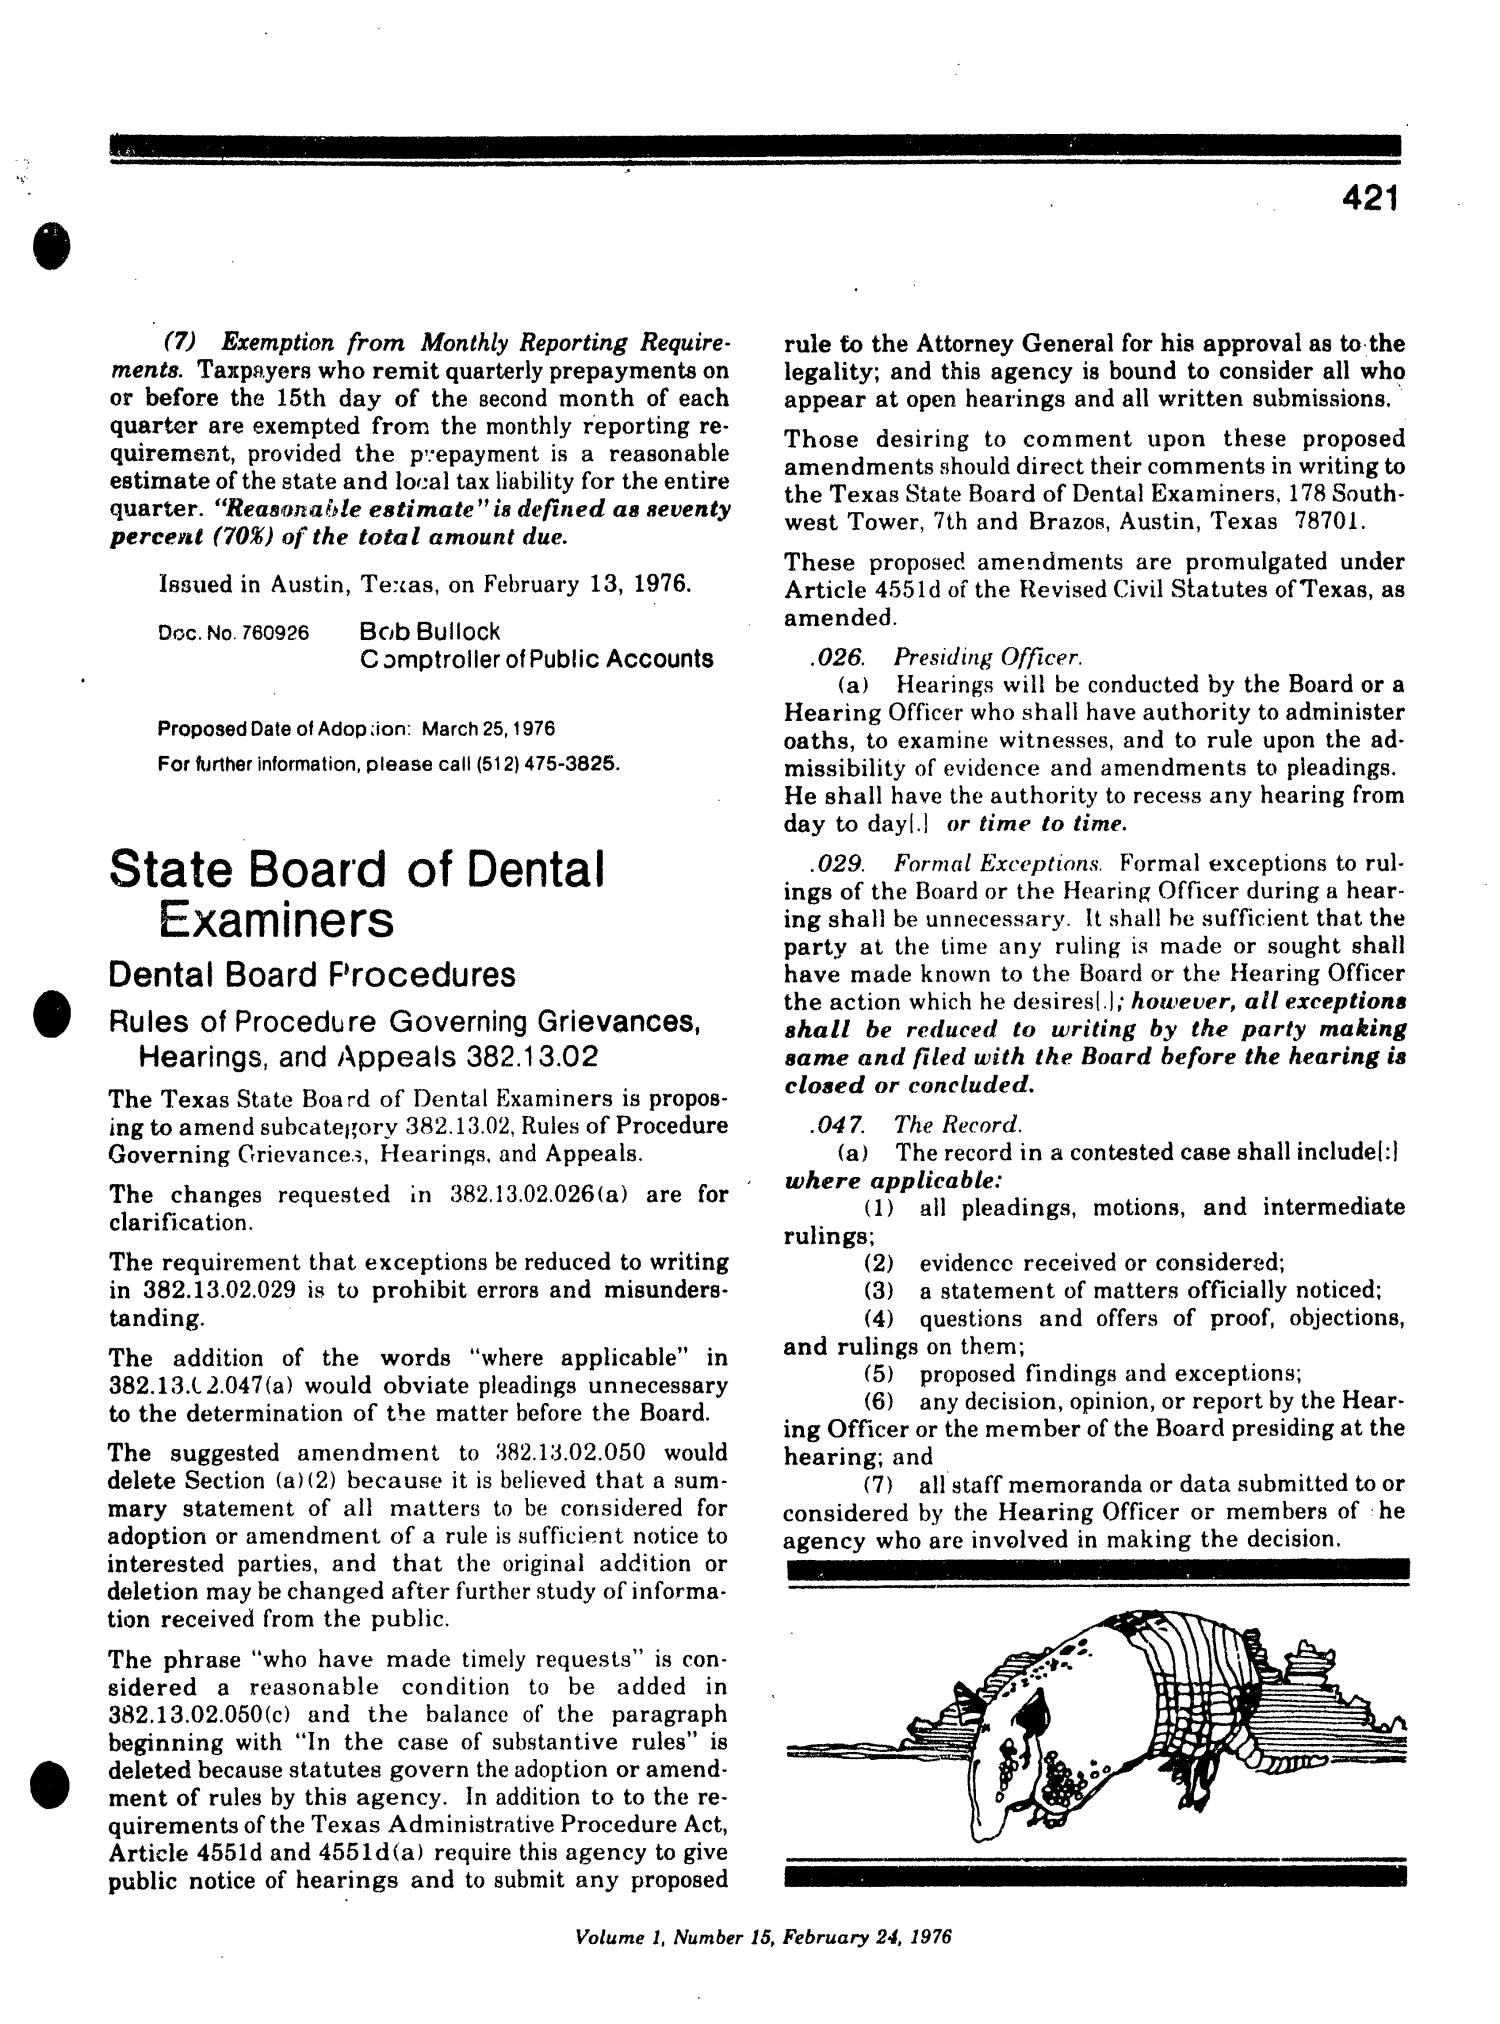 Texas Register, Volume 1, Number 15, Pages 415-450, February 24, 1976                                                                                                      421